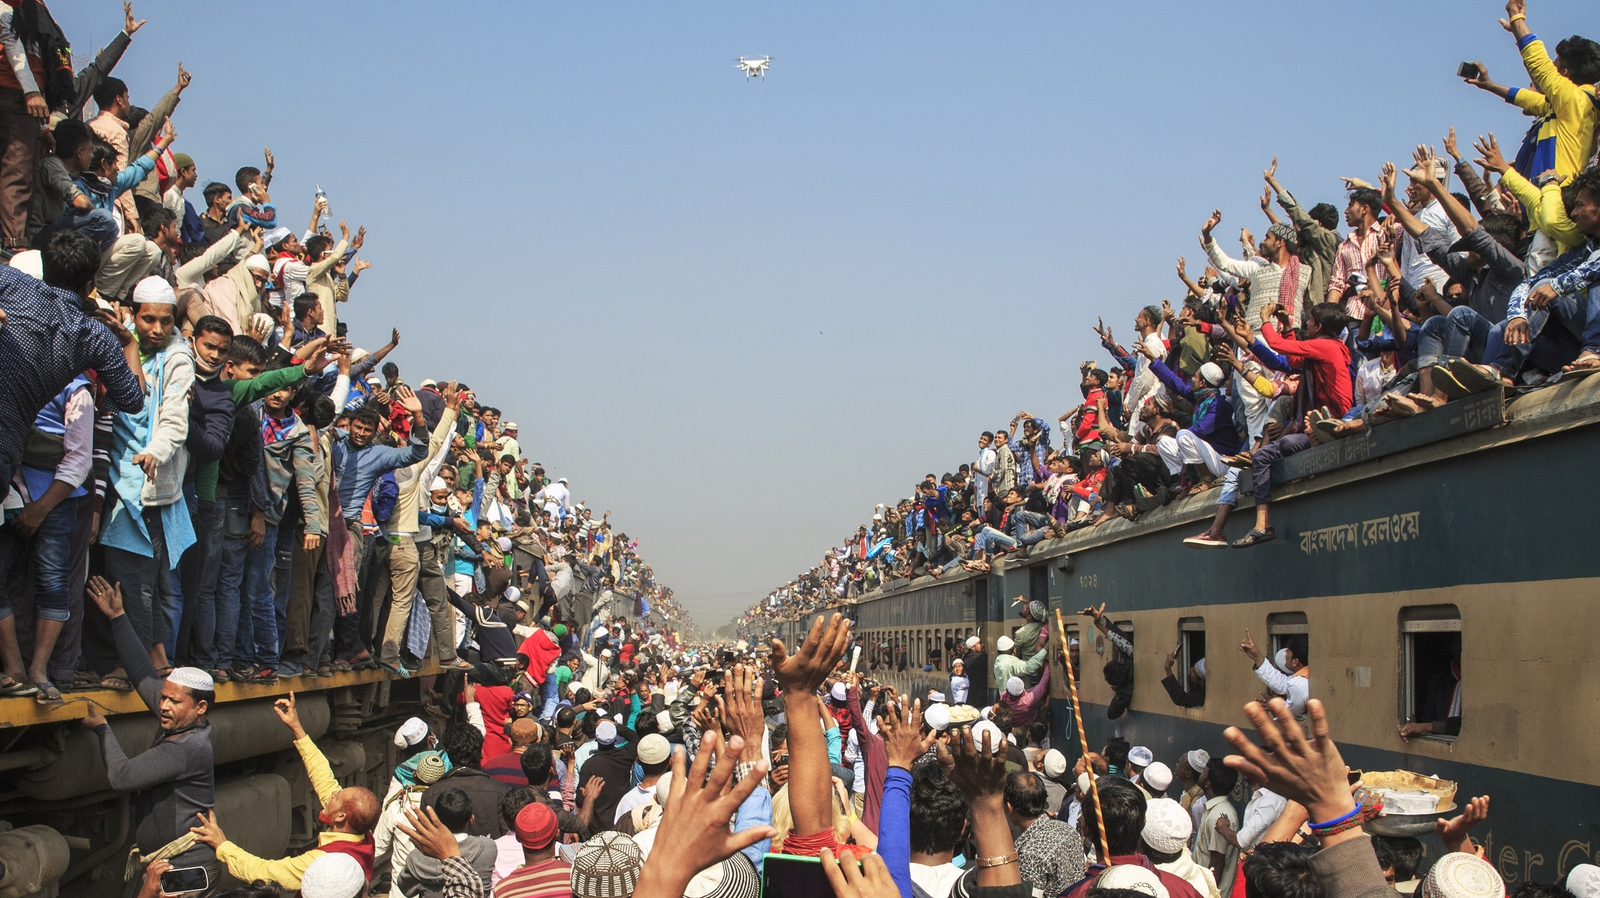 Image - Muslims returning home after the Biswa Ijtema on an overcrowded train.